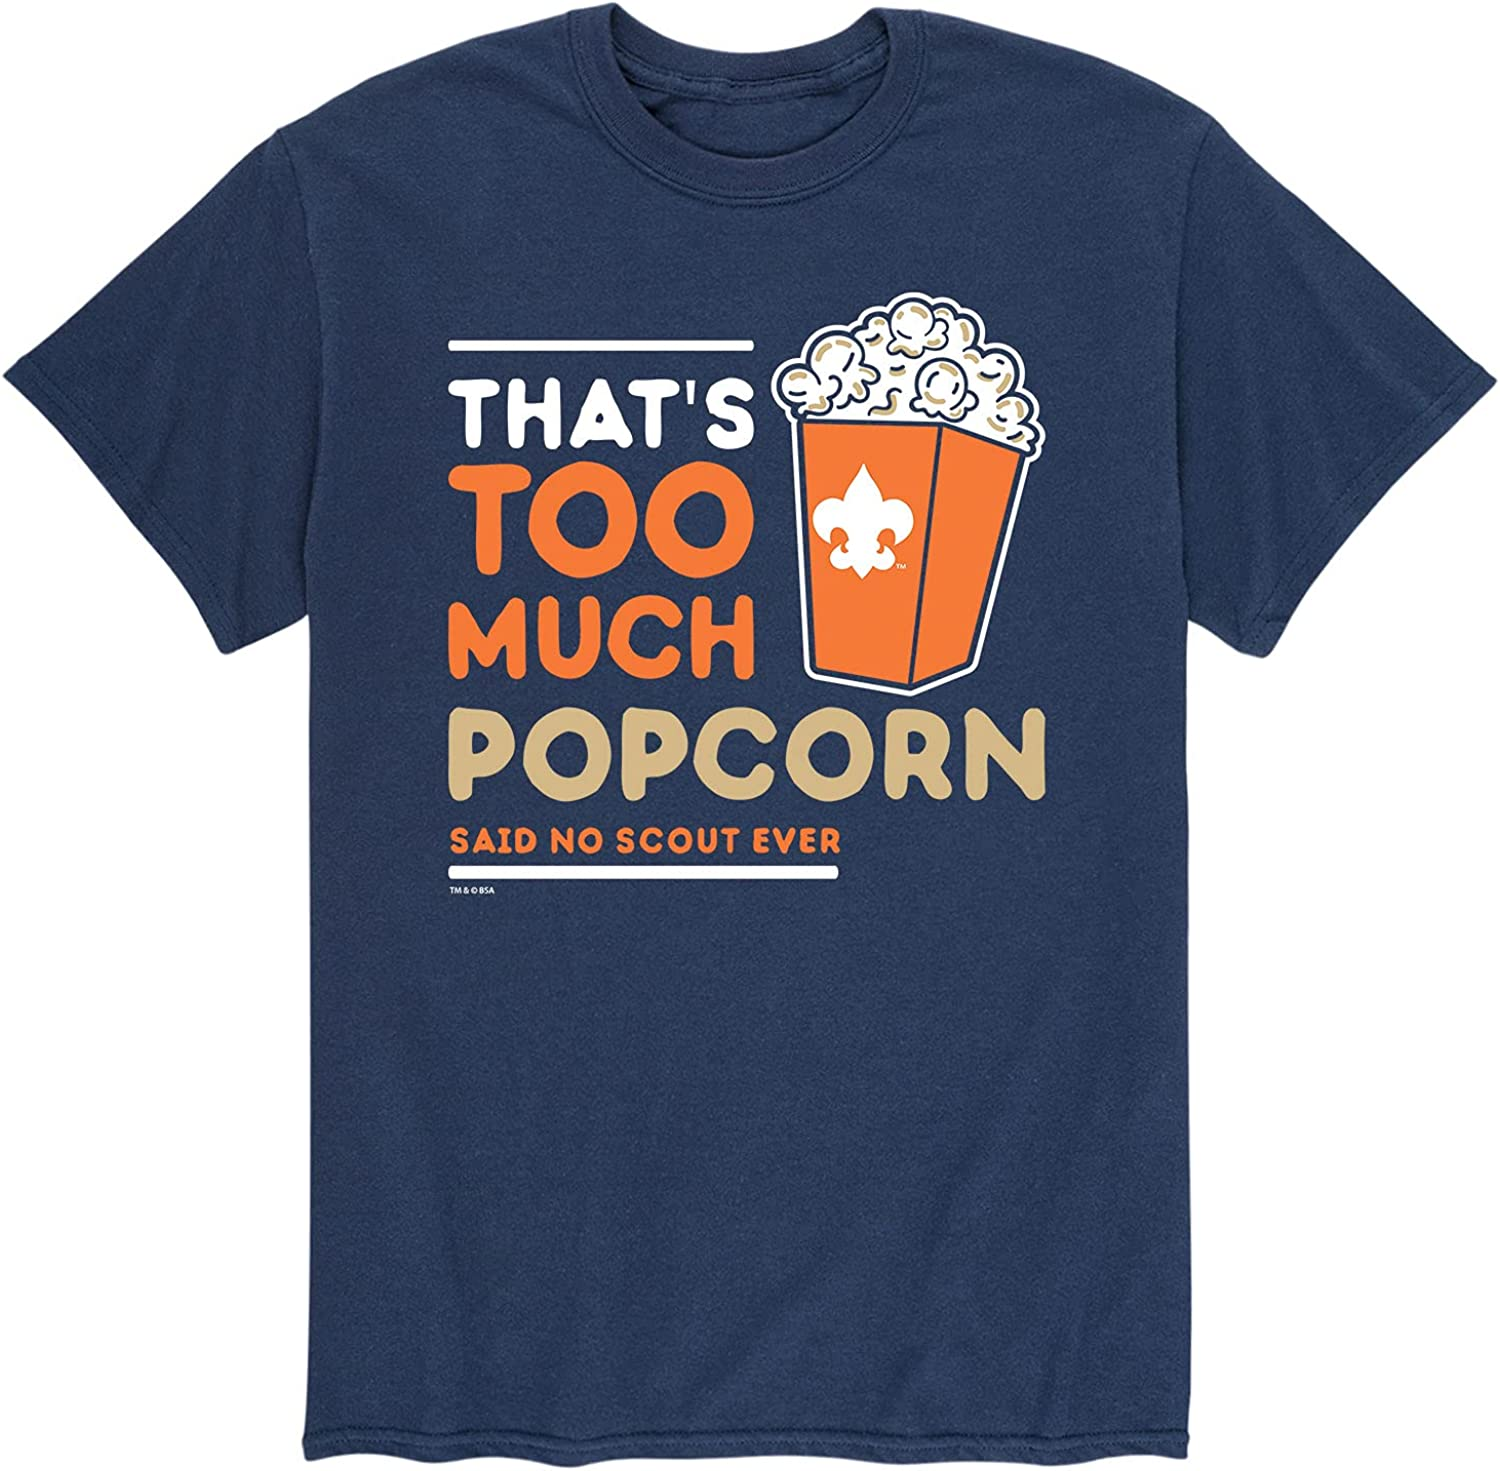 Boy Scouts of America Thats Too Much Factory outlet - New color Men's Sleev Popcorn Short